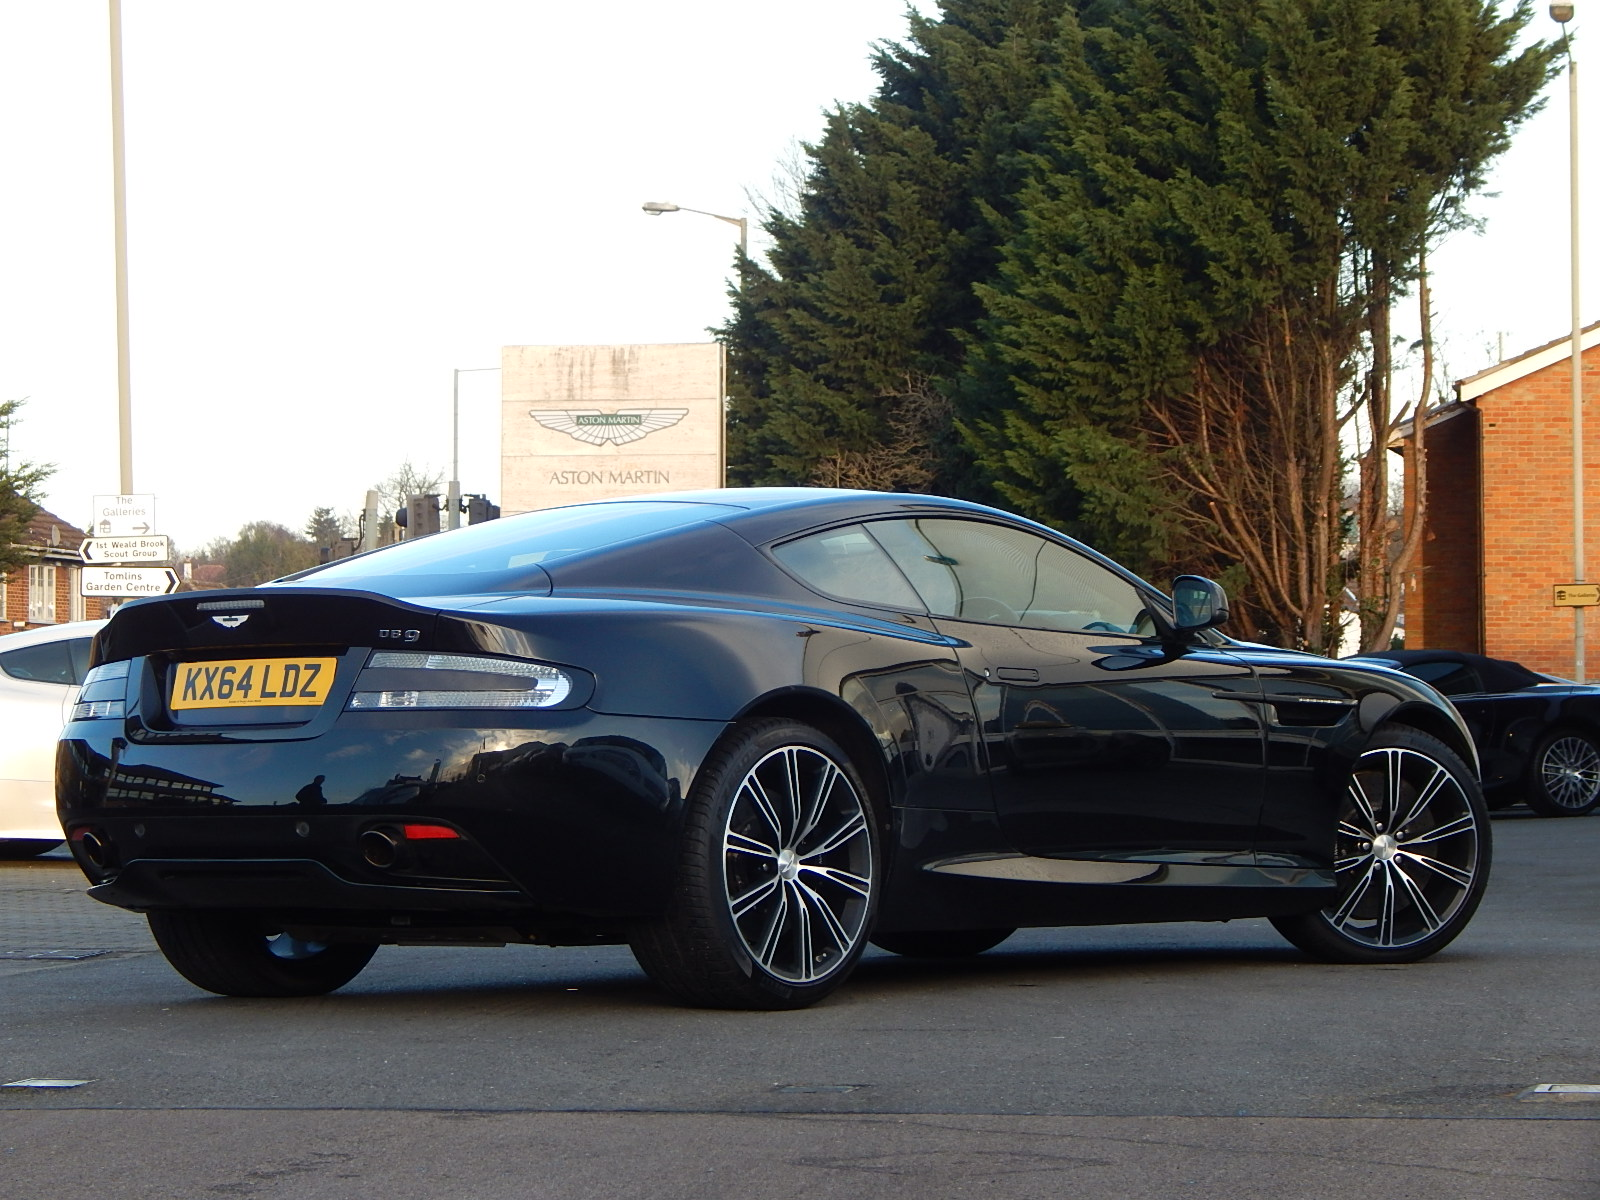 Aston Martin DB9 V12 2dr Touchtronic, Carbon Edition image 2